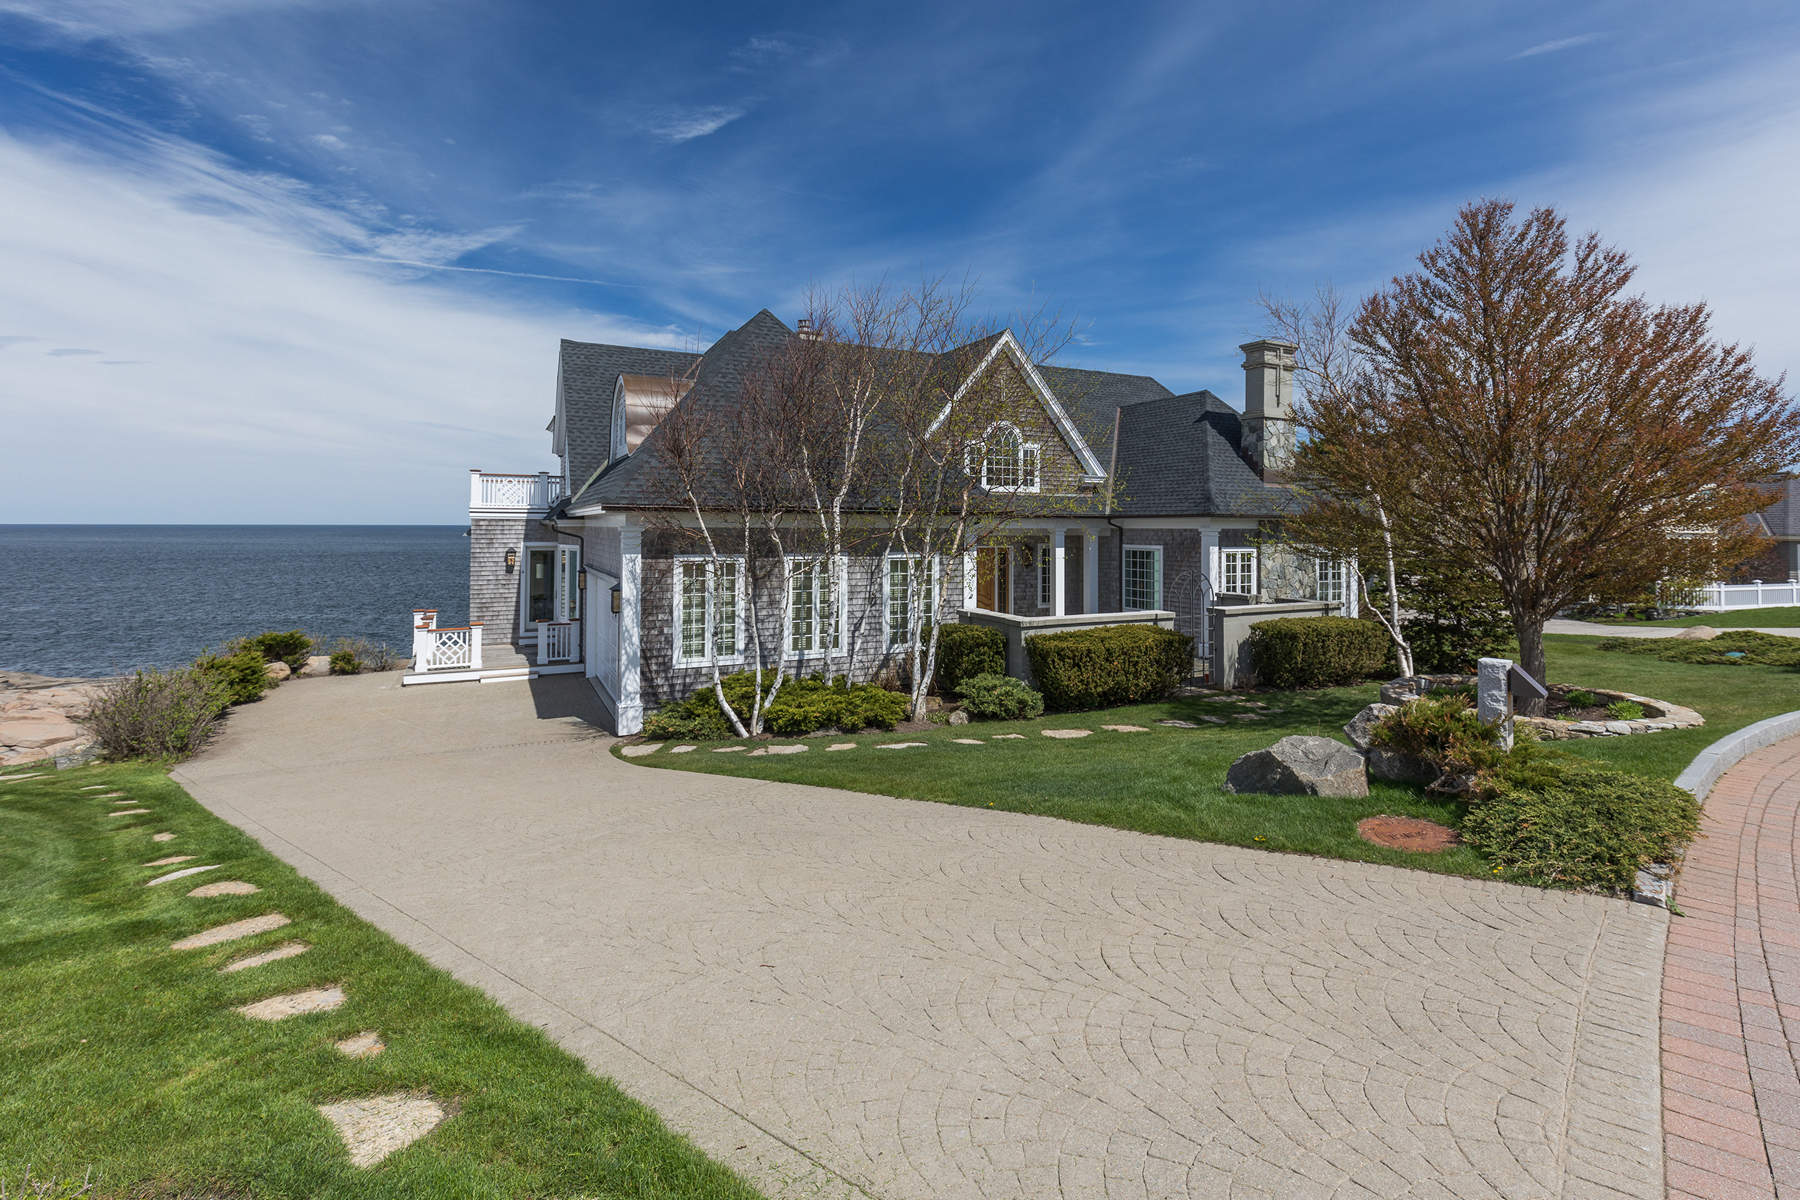 Single Family Home for Sale at Grand Oceanfront Home at Lighthouse Watch 4 Lighthouse Watch York, Maine, 03909 United States